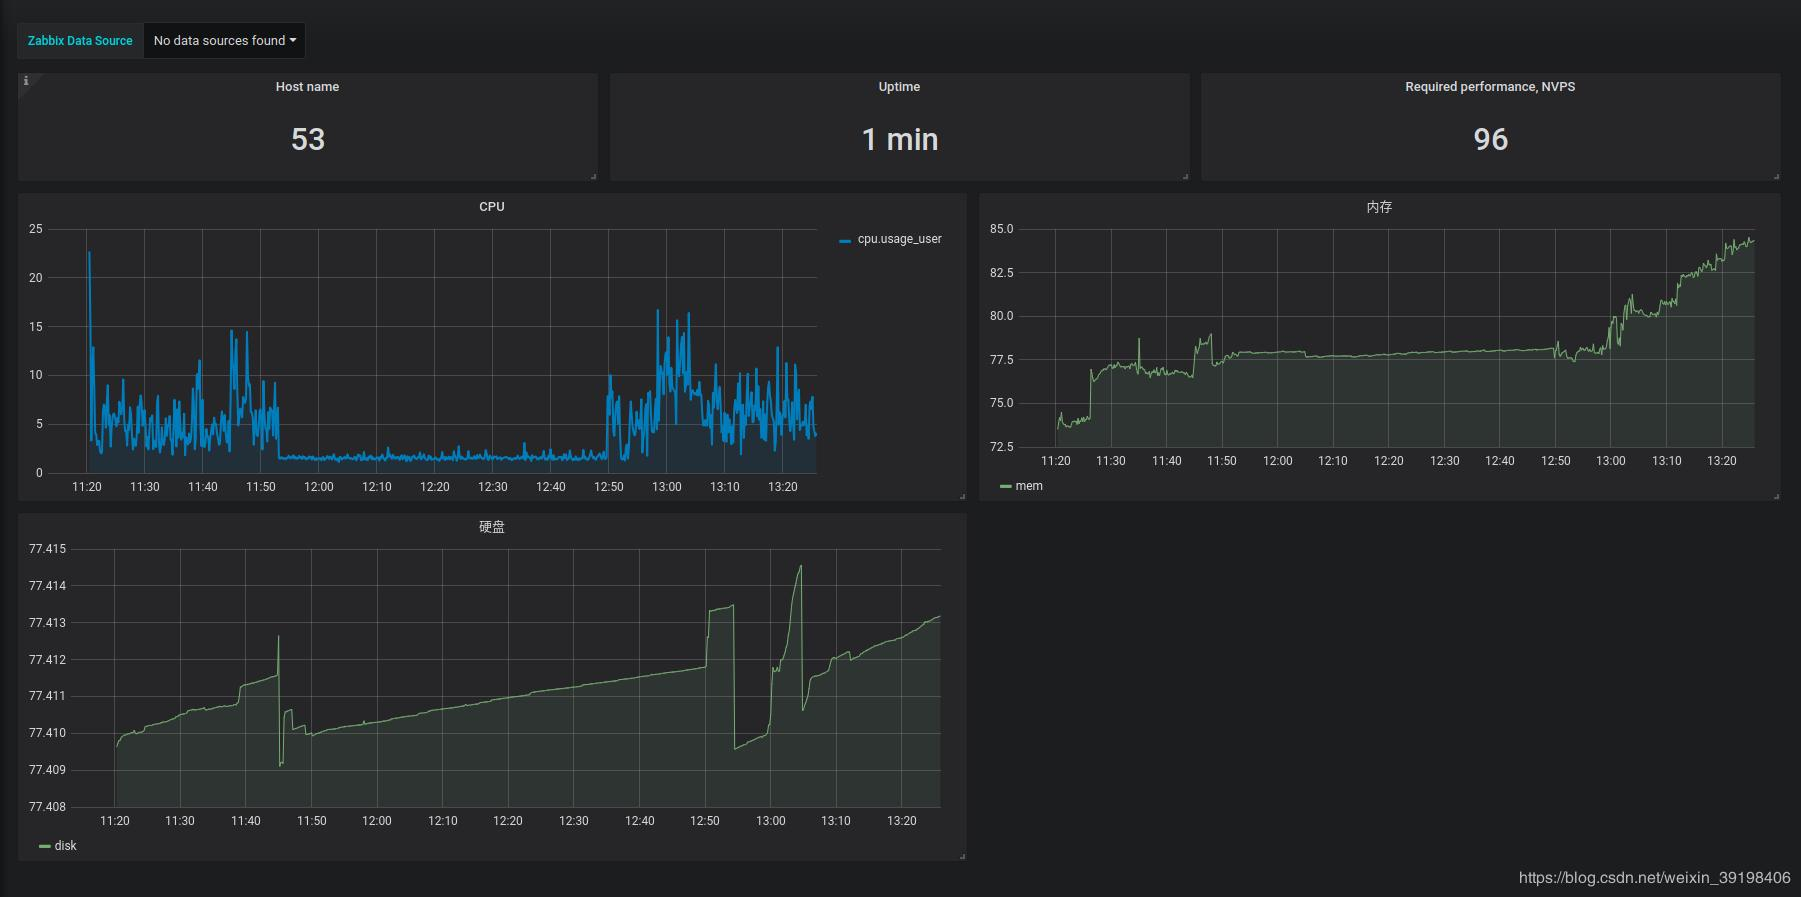 How to build a visual application monitoring server performance